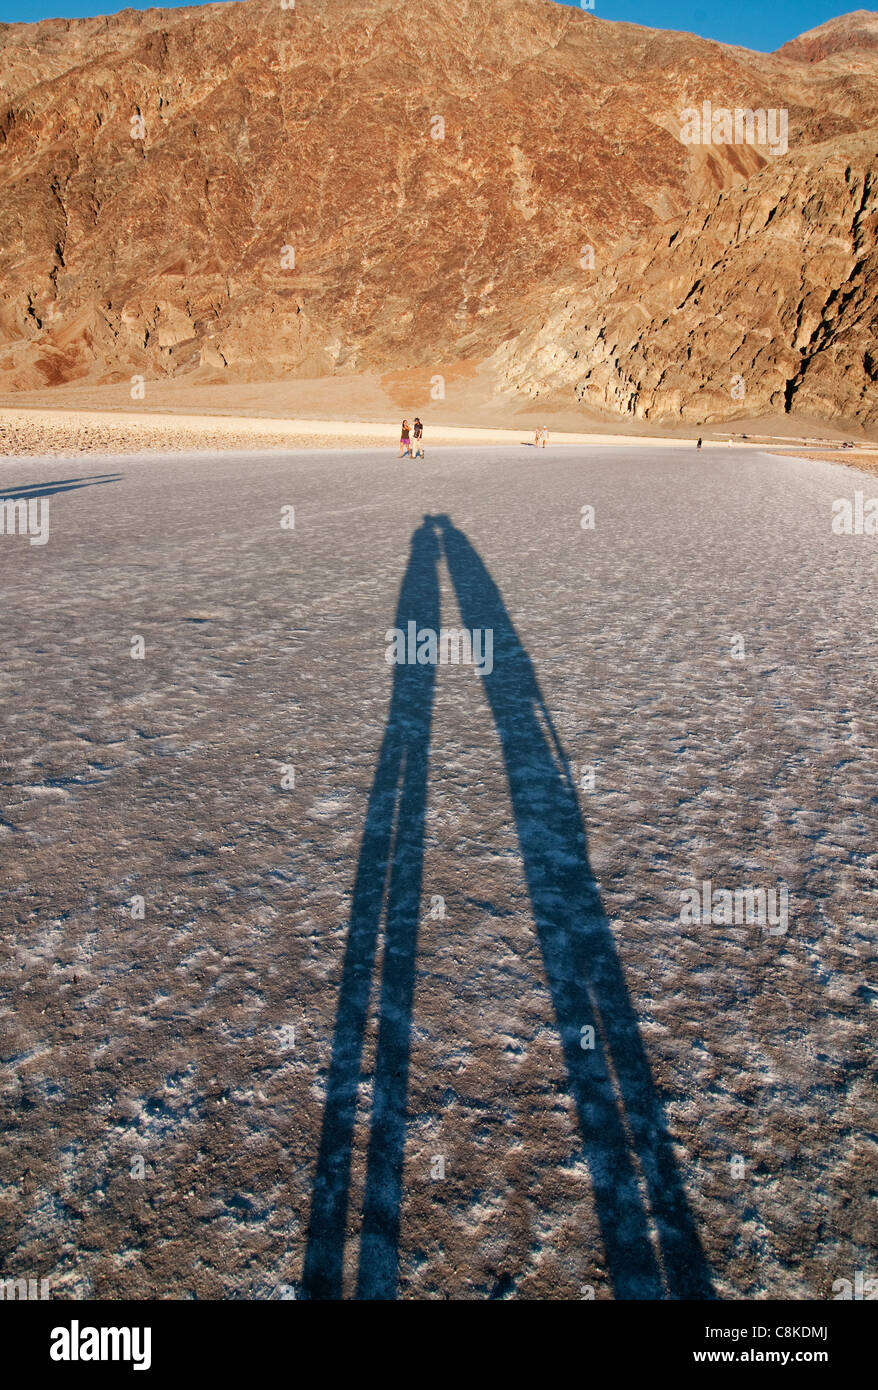 Shadow of Kissing Couple, Badwater Basic Salt Pan, Death Valley - Stock Image